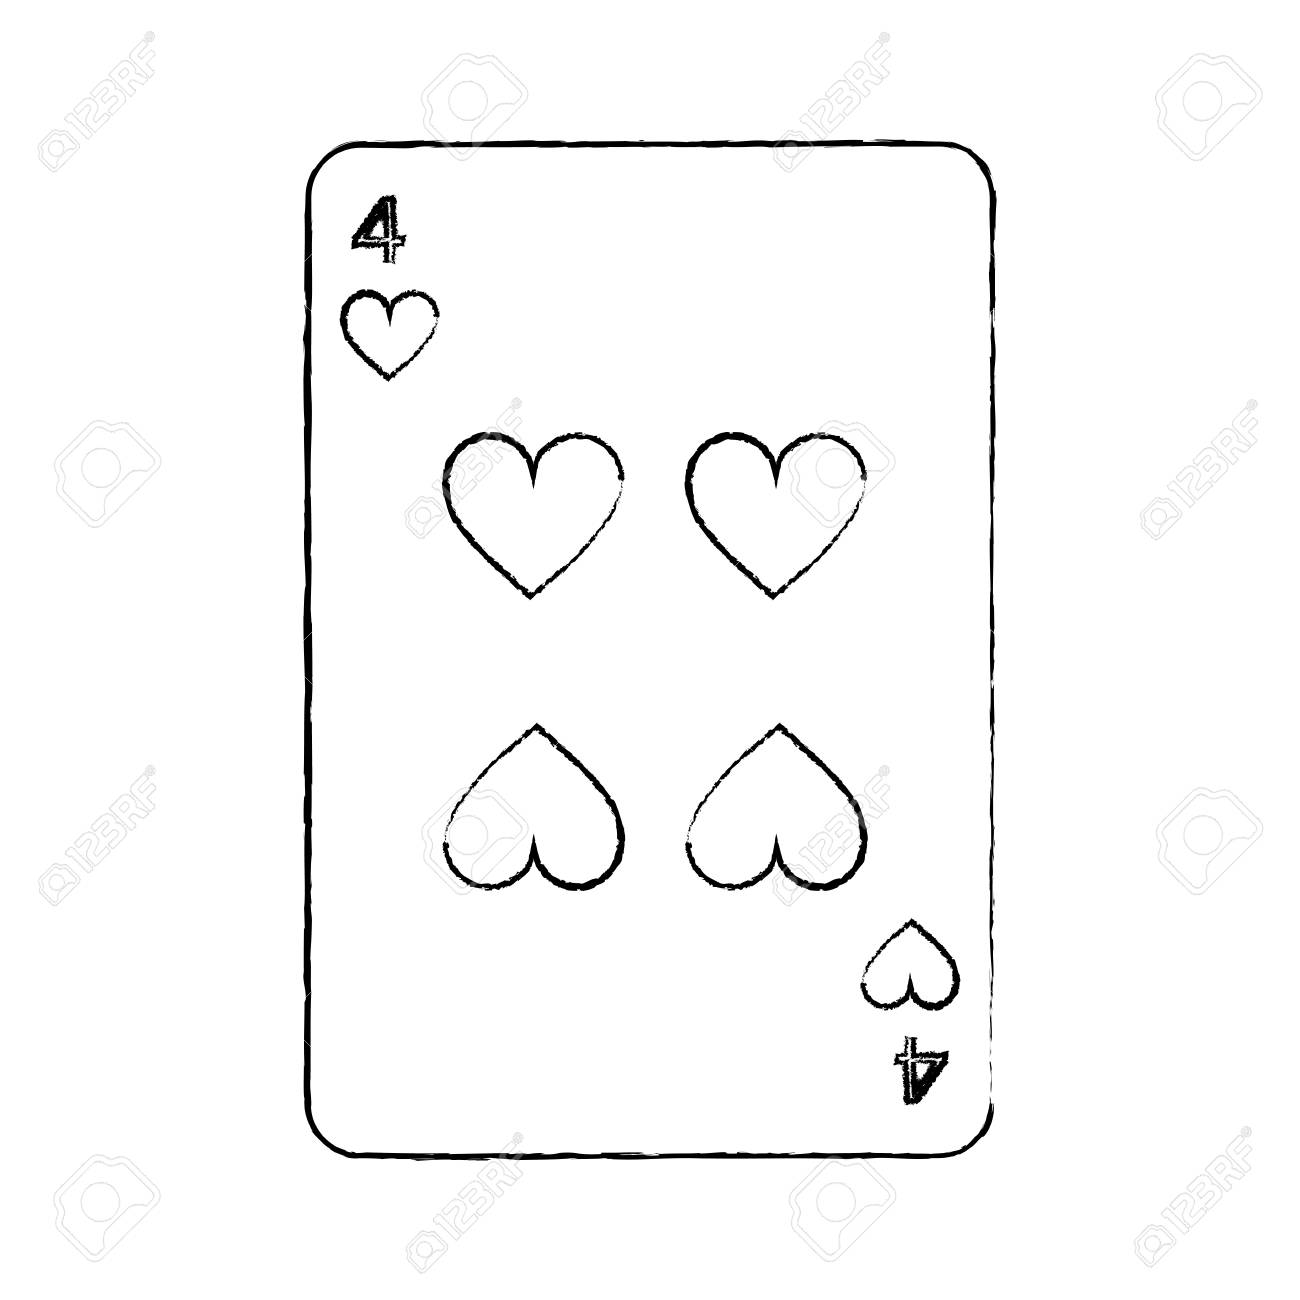 four of hearts french playing cards related icon image vector illustration design black sketch line - 90169633